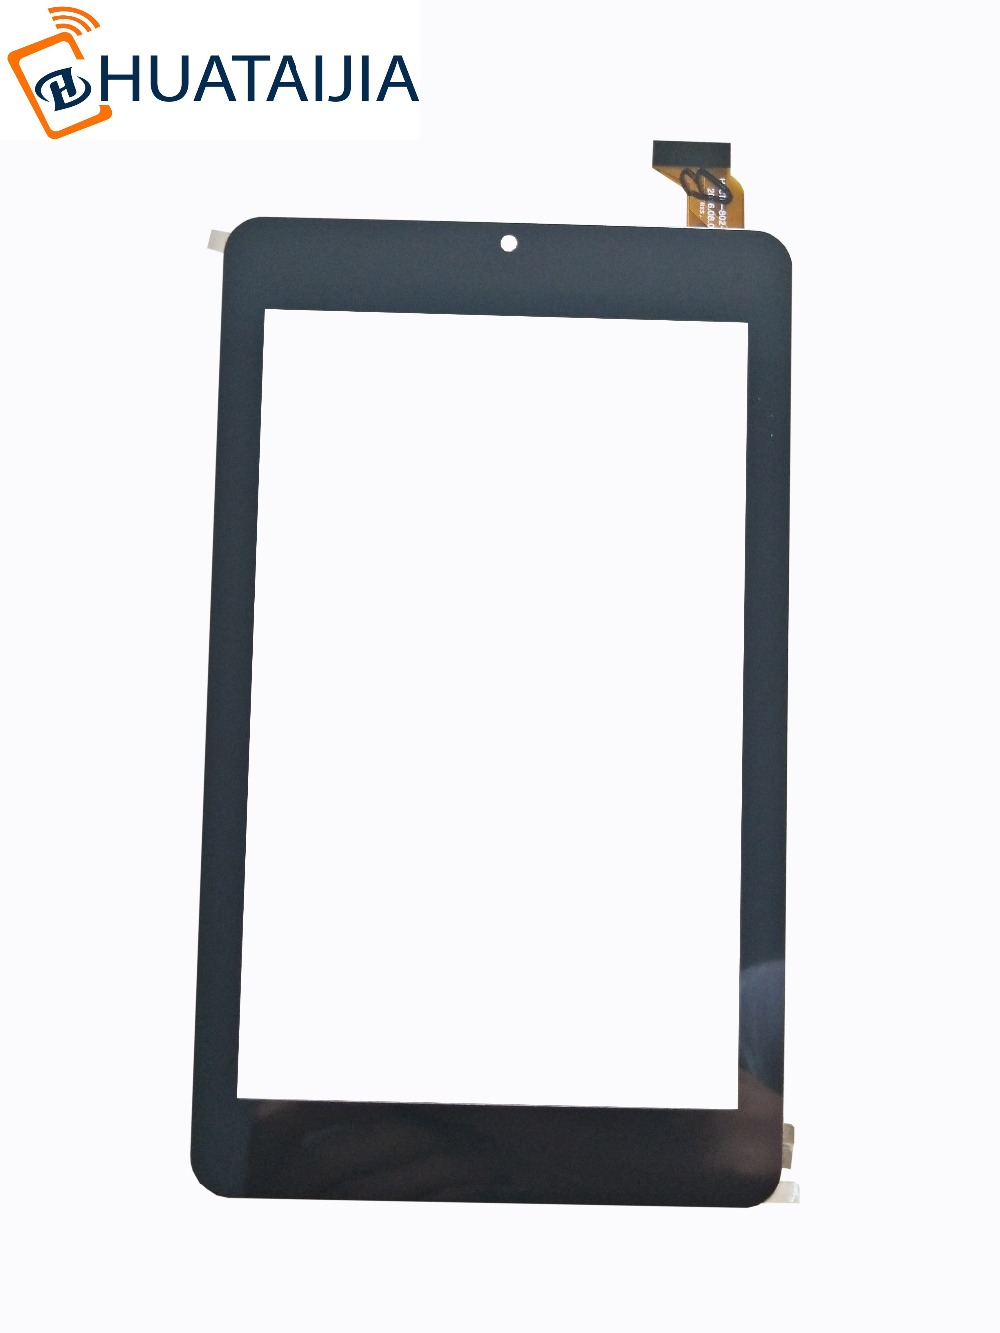 New For 7 inch Tablet SMARTBOOK S7QS touch screen panel Digitizer Glass Sensor Replacement Free Shipping 7 inch tablet screen for dp070211 f1 touch screen digitizer sensor glass touch panel replacement parts high quality black